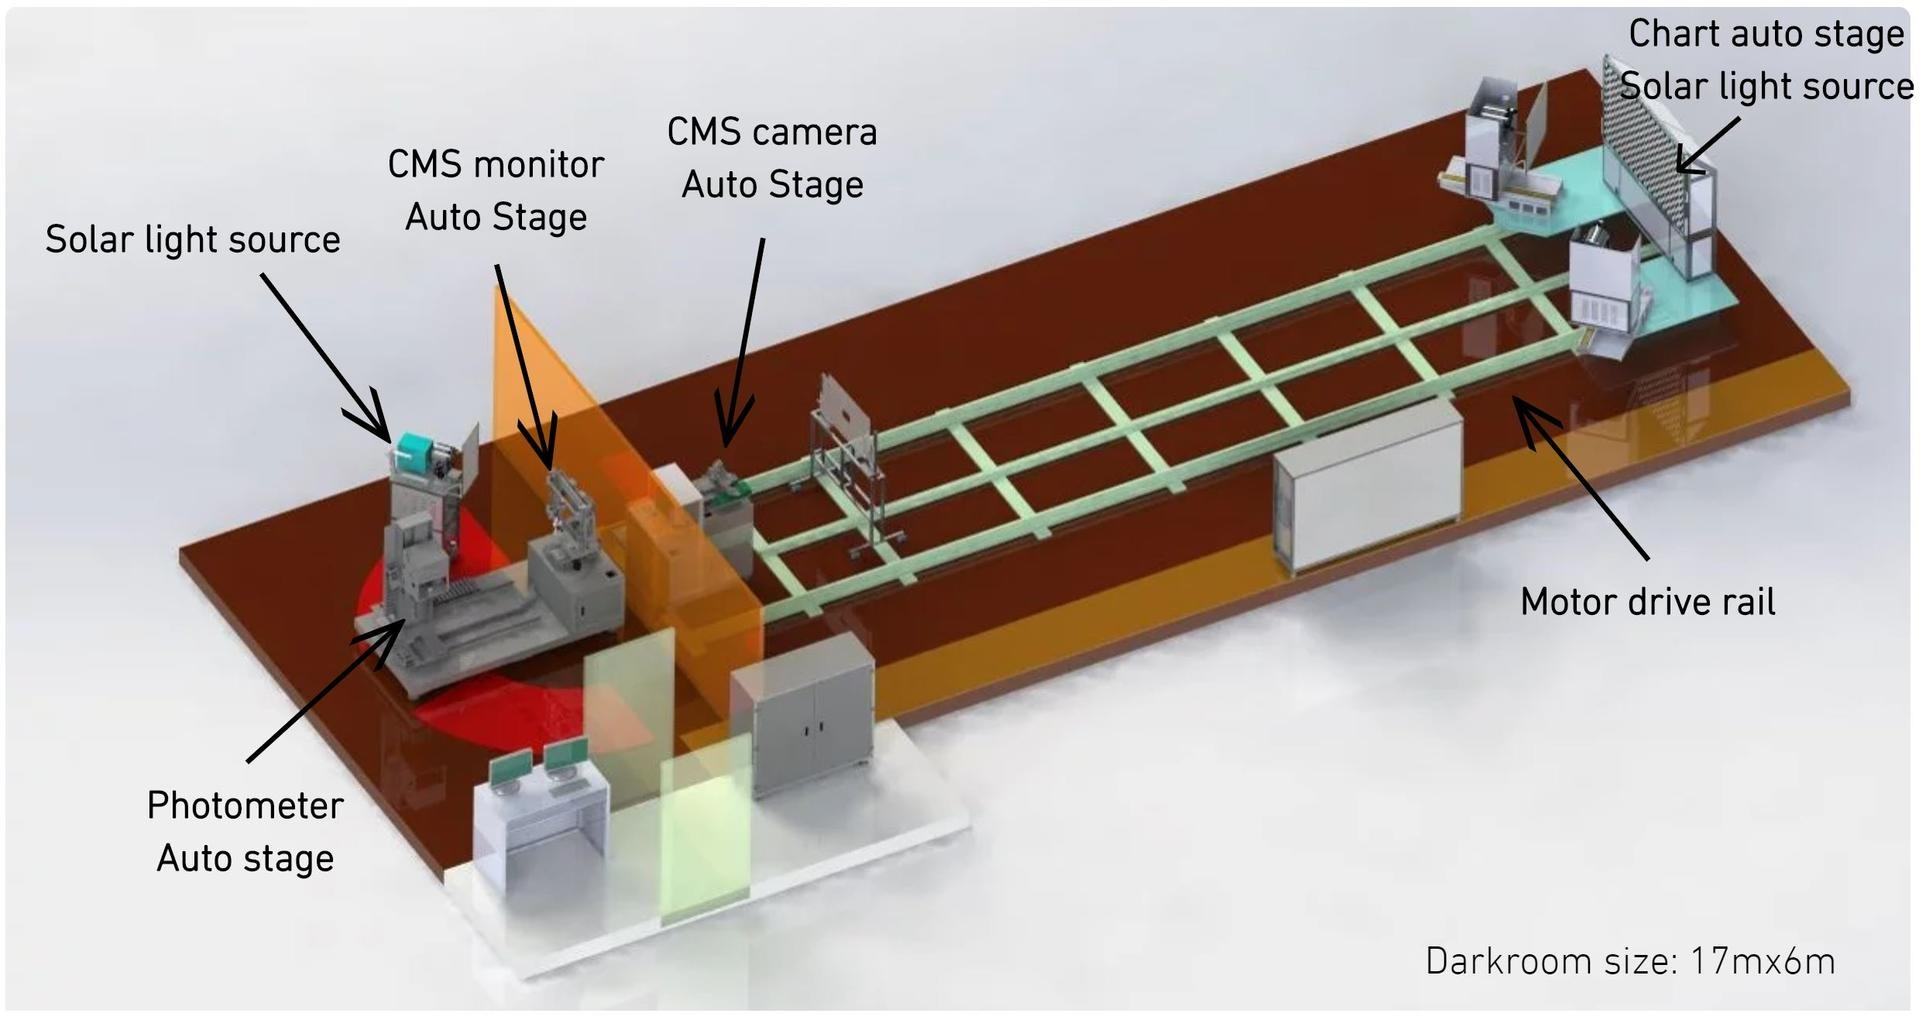 CMS module system layout image